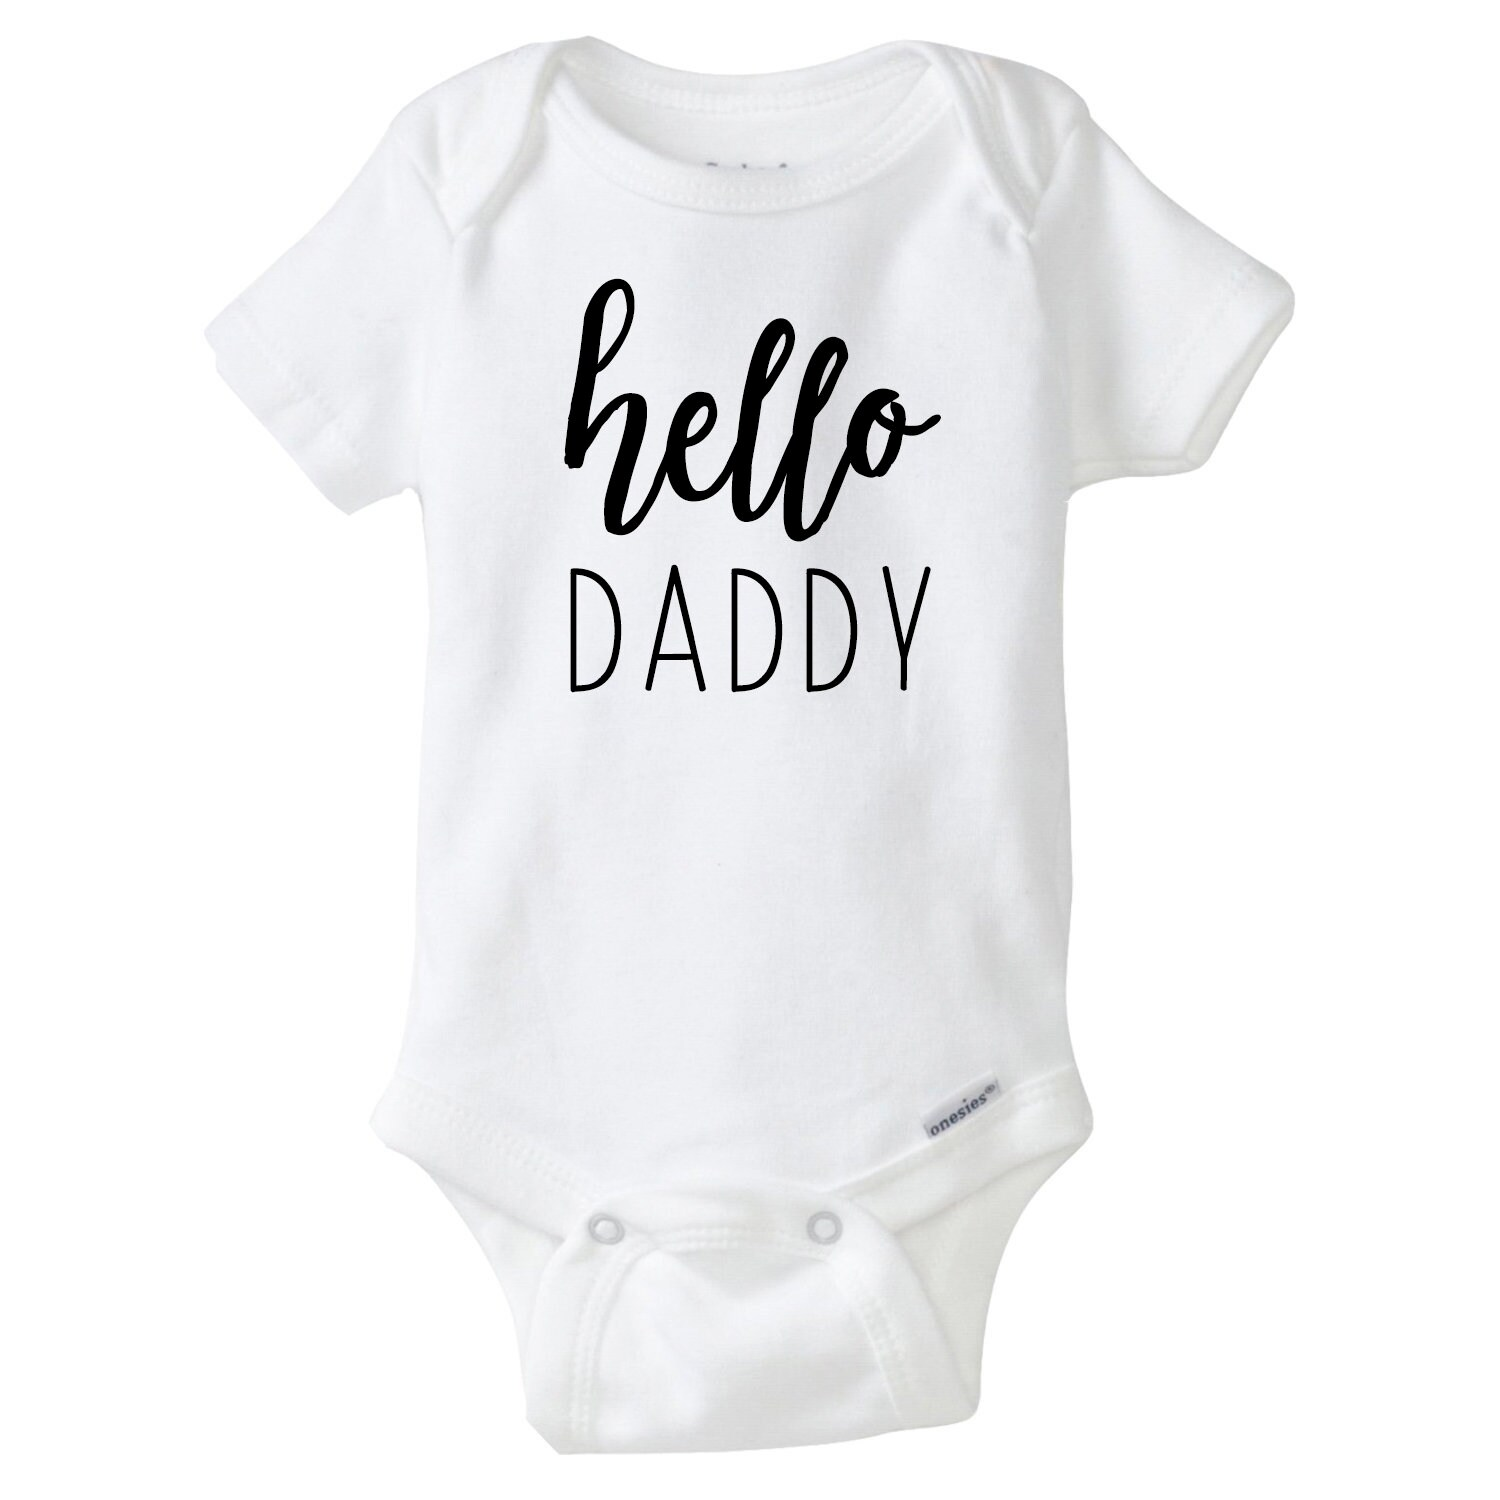 935ab617b Hello Daddy Baby Onesie, Pregnancy Announcement Onesies®, Baby Announcement,  Pregnancy Reveal to Husband, Going to be a Dad